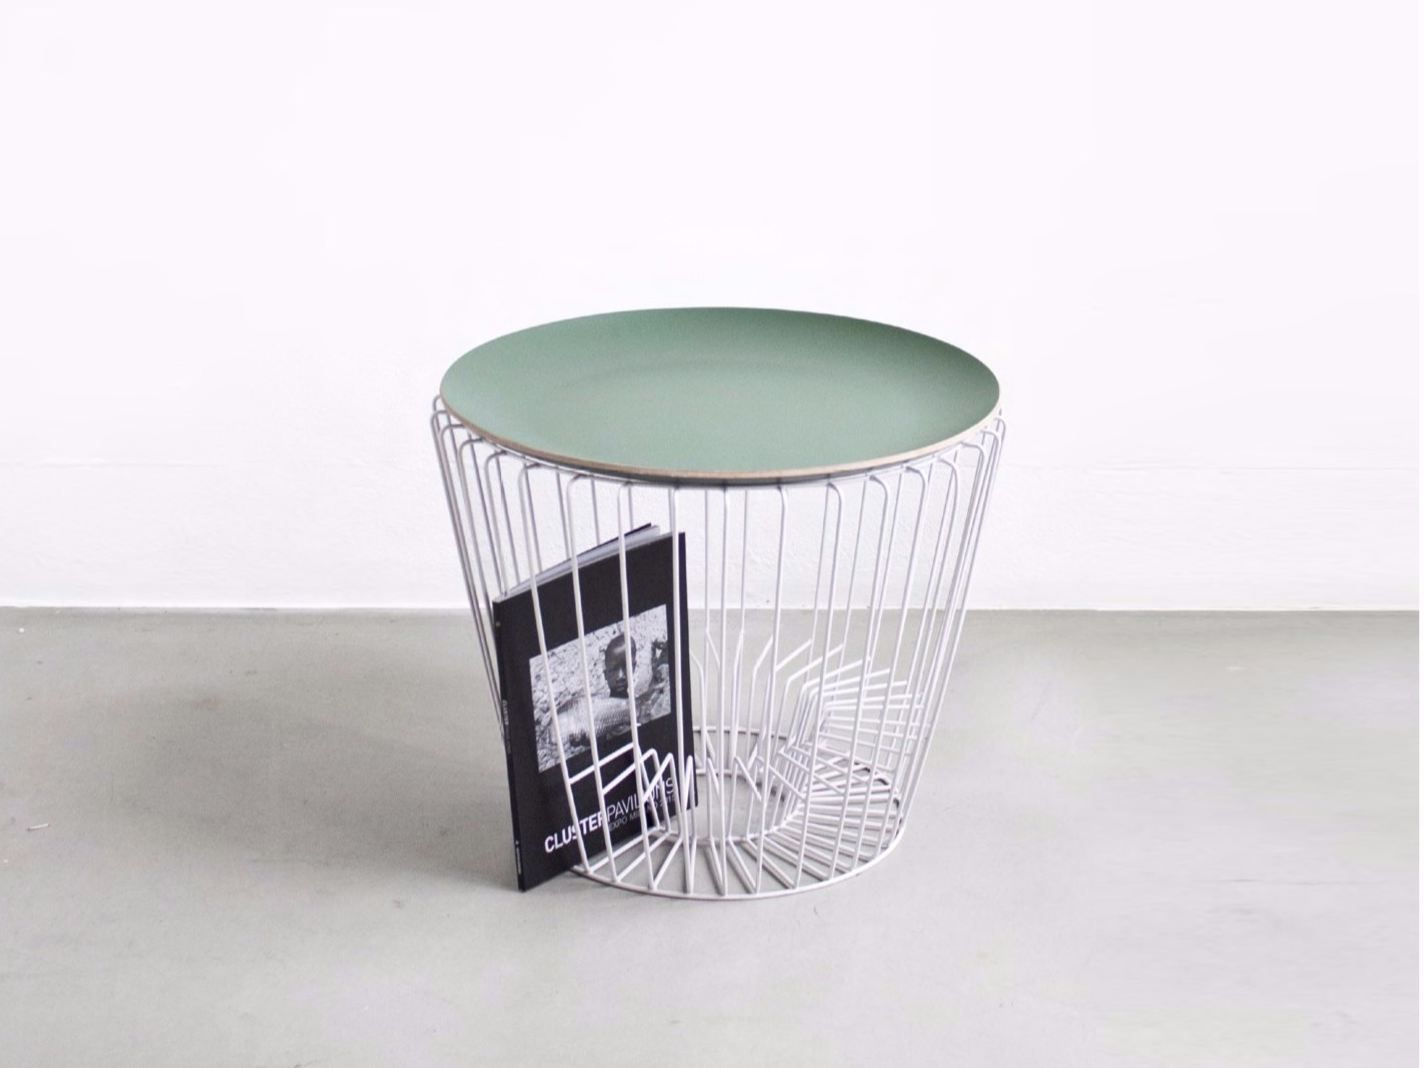 Superb Coffee Table By Coming B